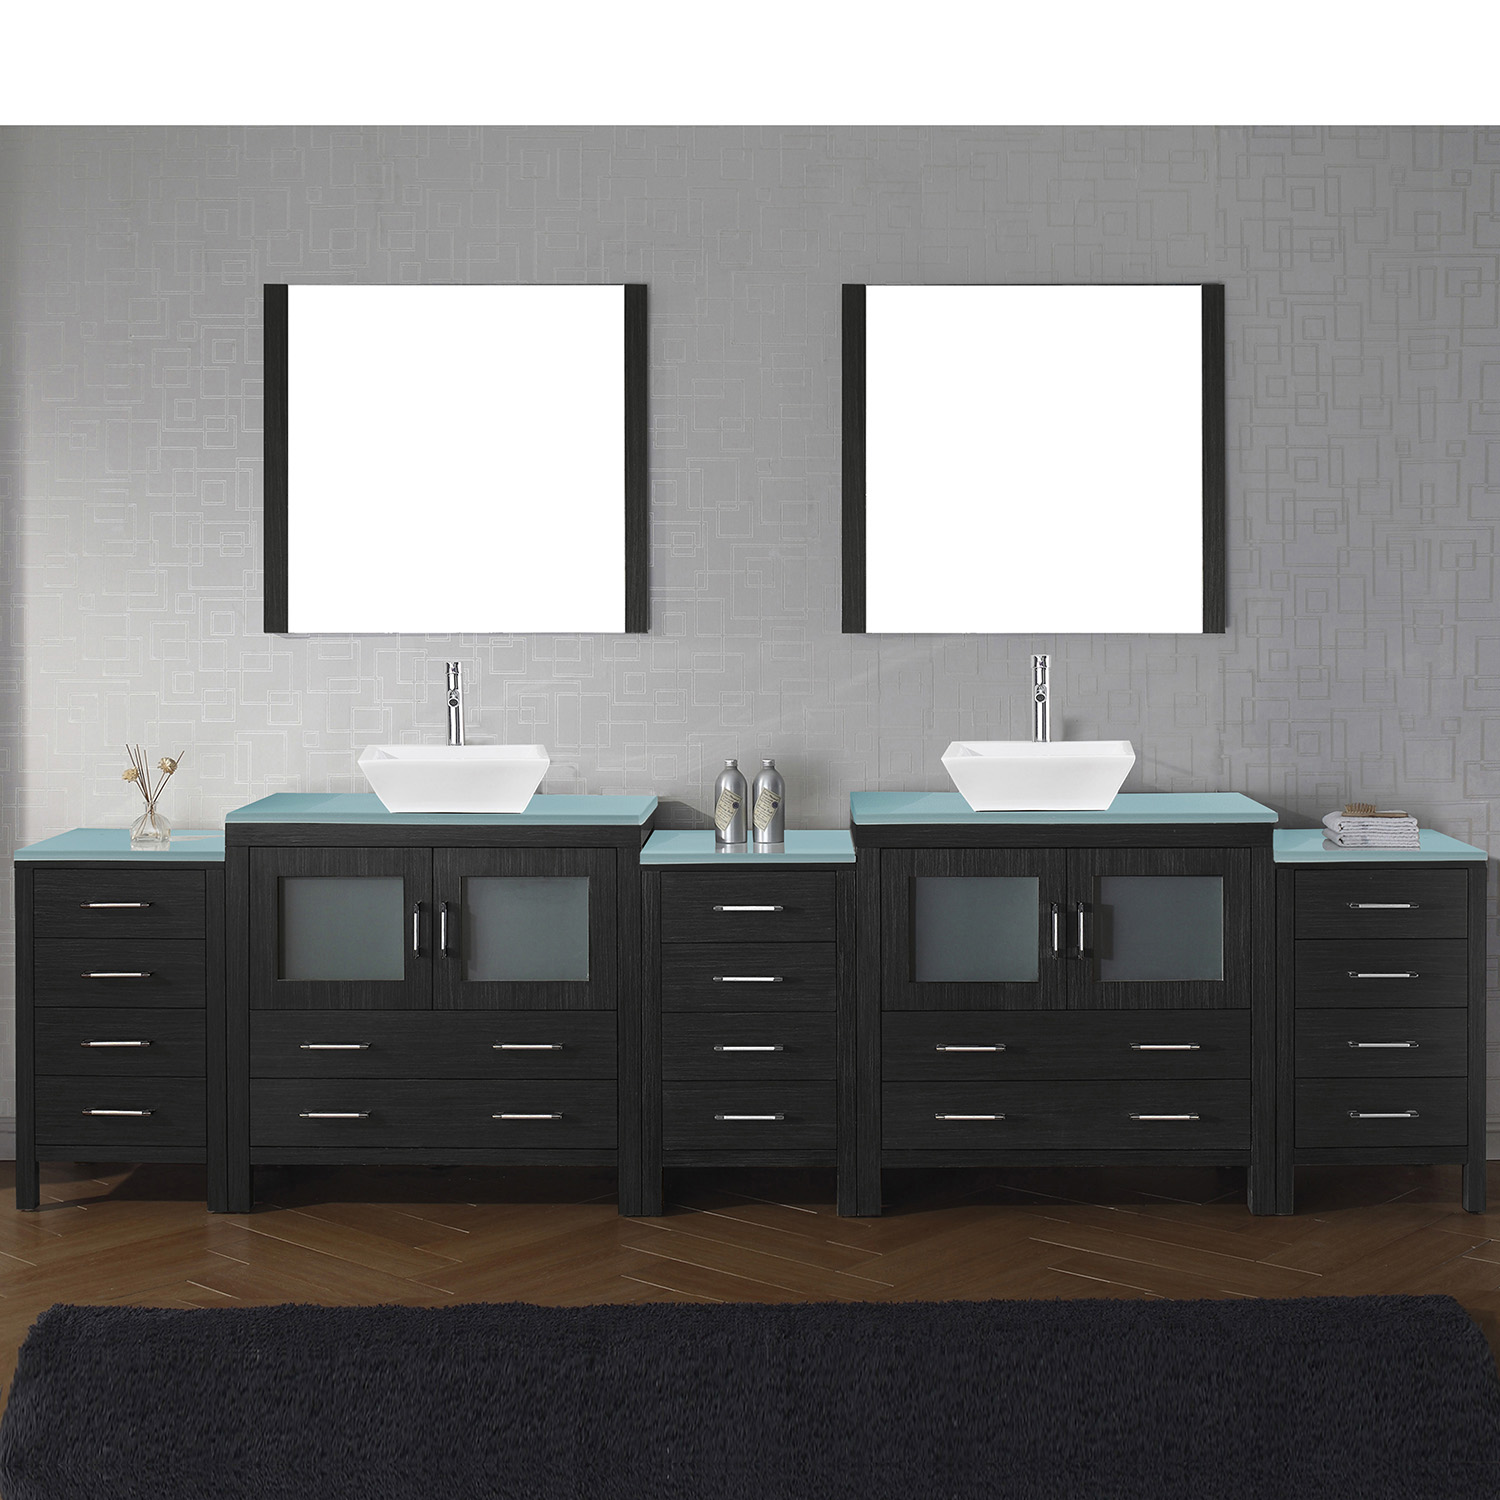 "126"" Double Bath Vanity in Zebra Grey with Aqua Tempered Glass Top and Square Sink with Brushed Nickel Faucet and Mirrors"